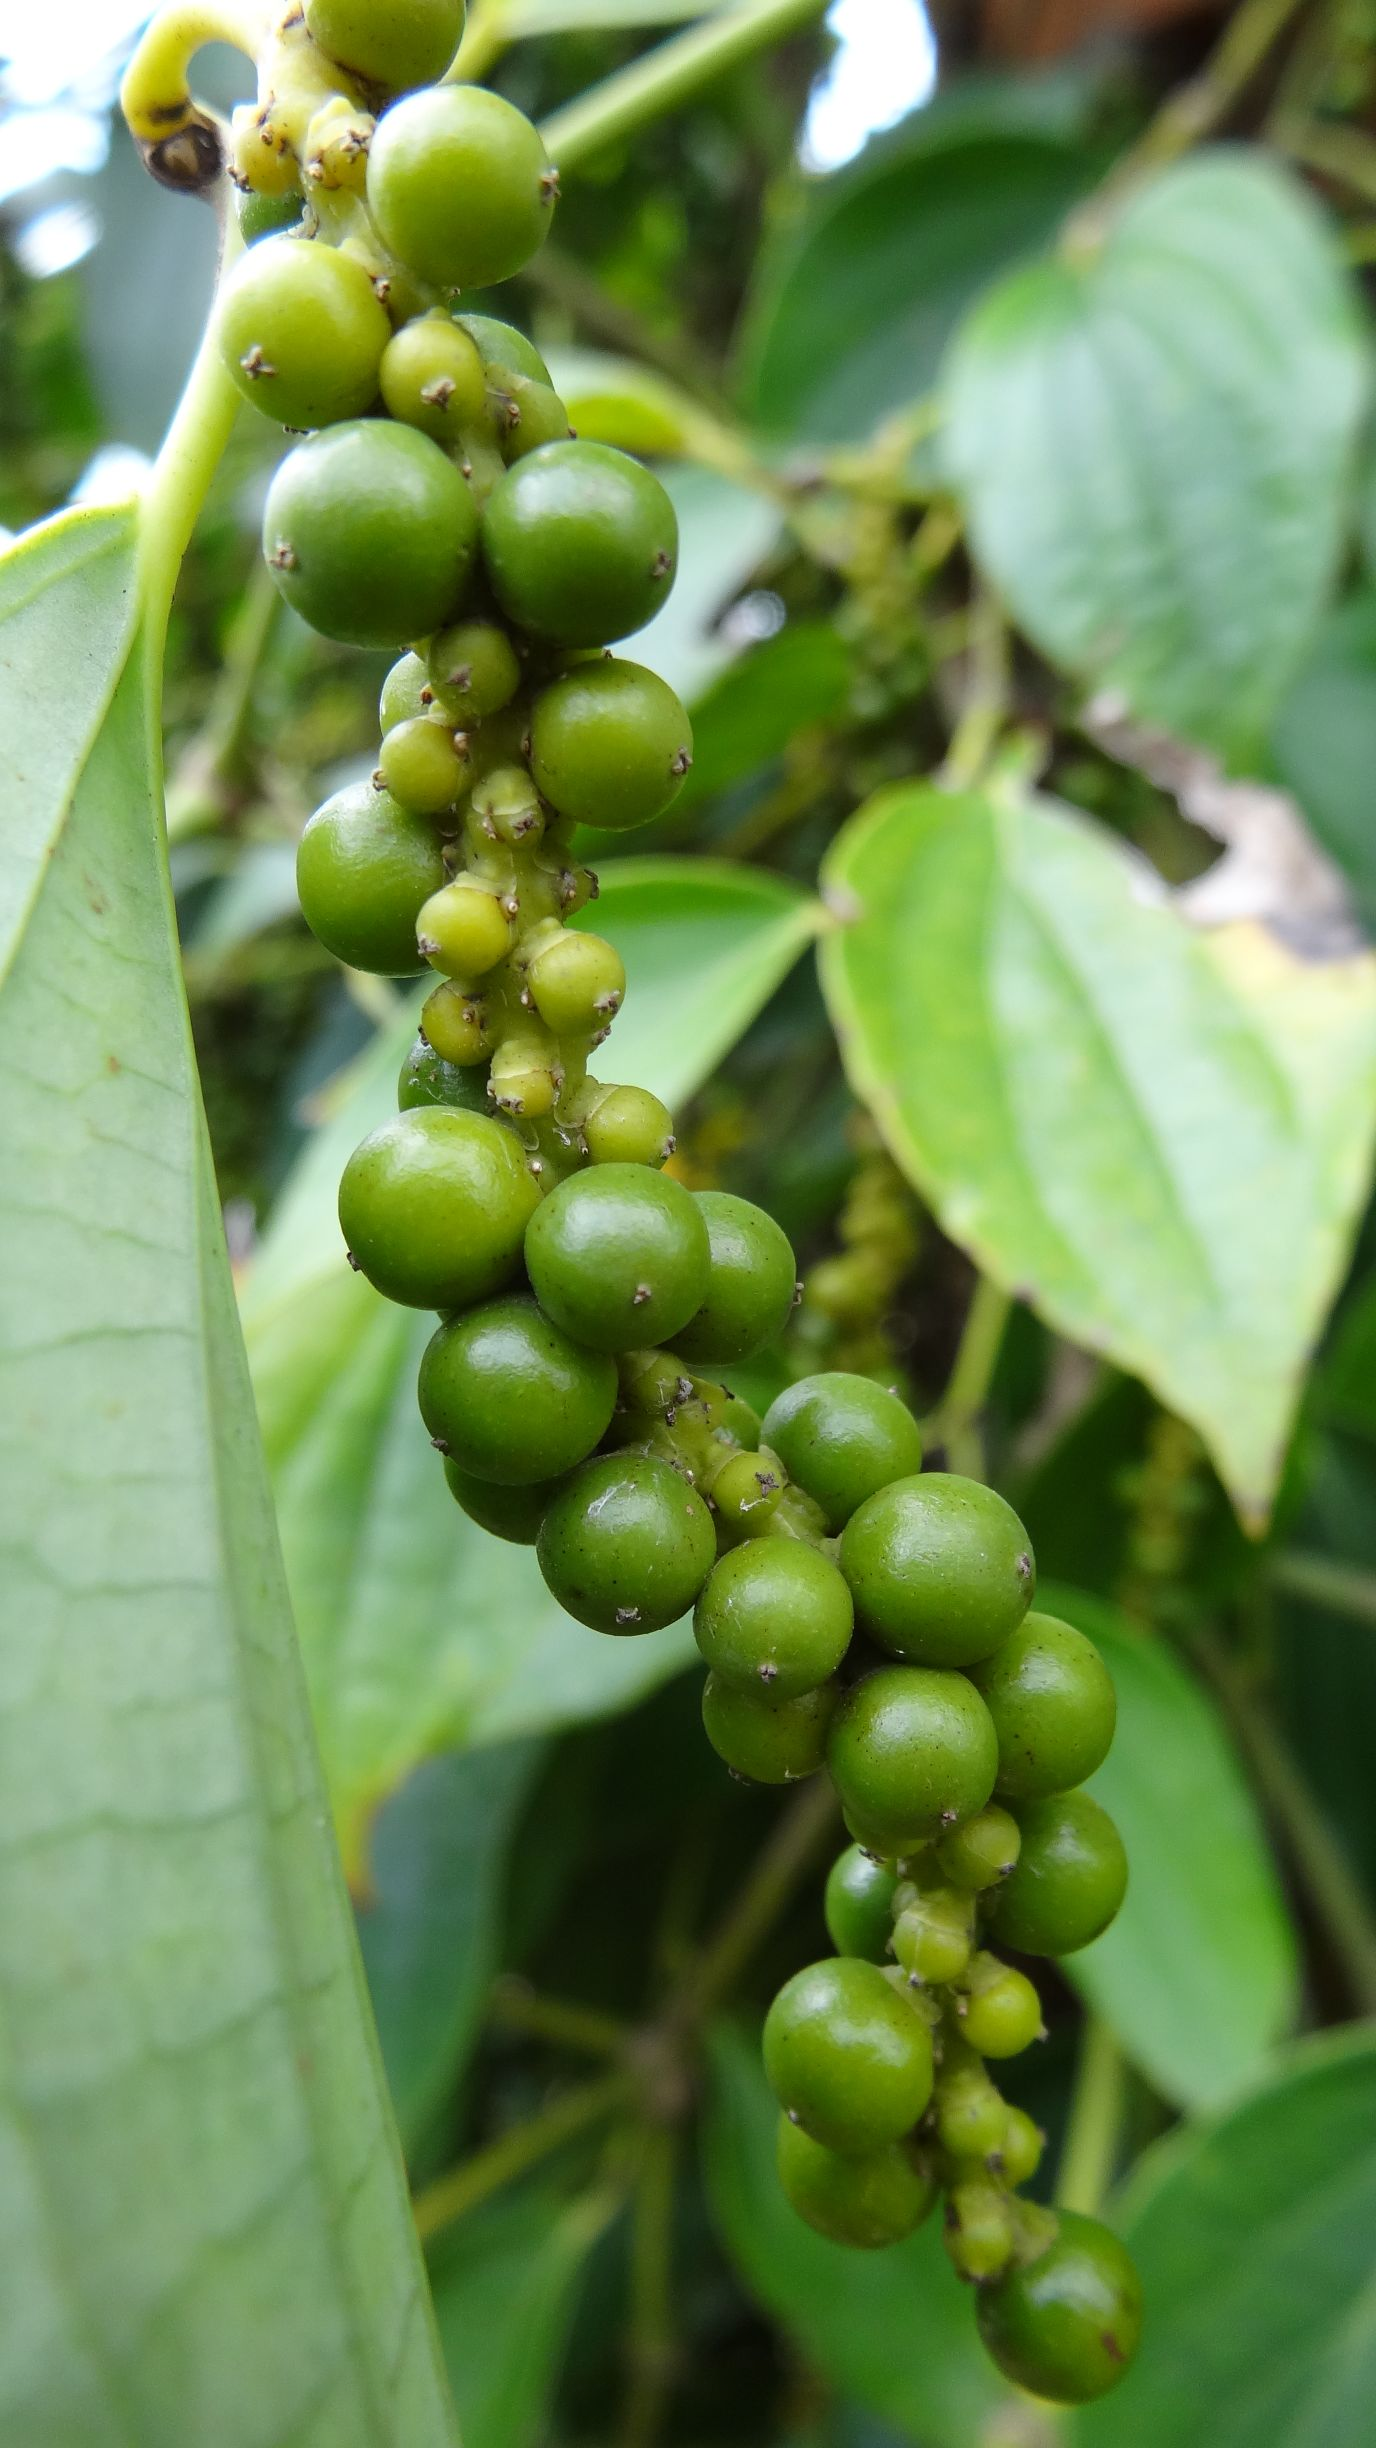 kampot pepper, the best there is apparently